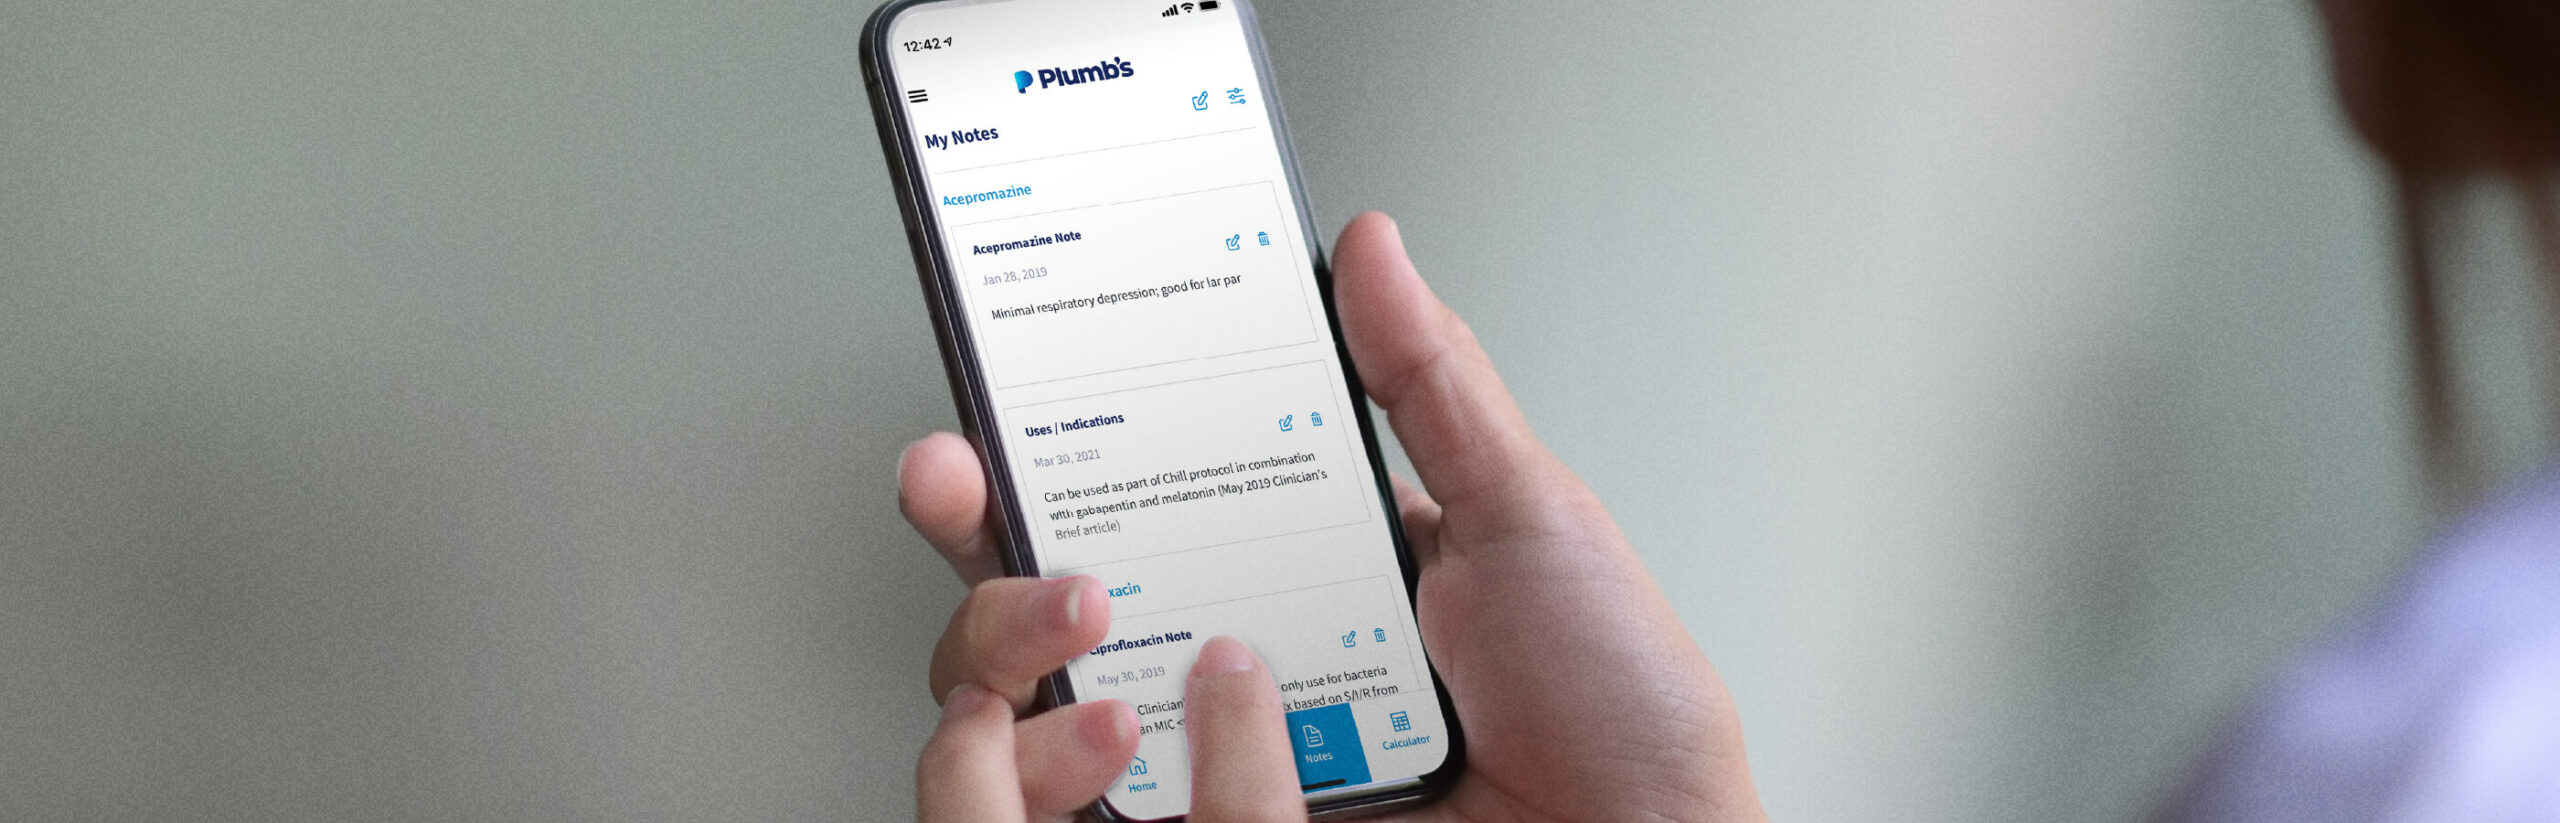 How Plumb's Veterinary Drugs Saves You Time with Notes and Favorites